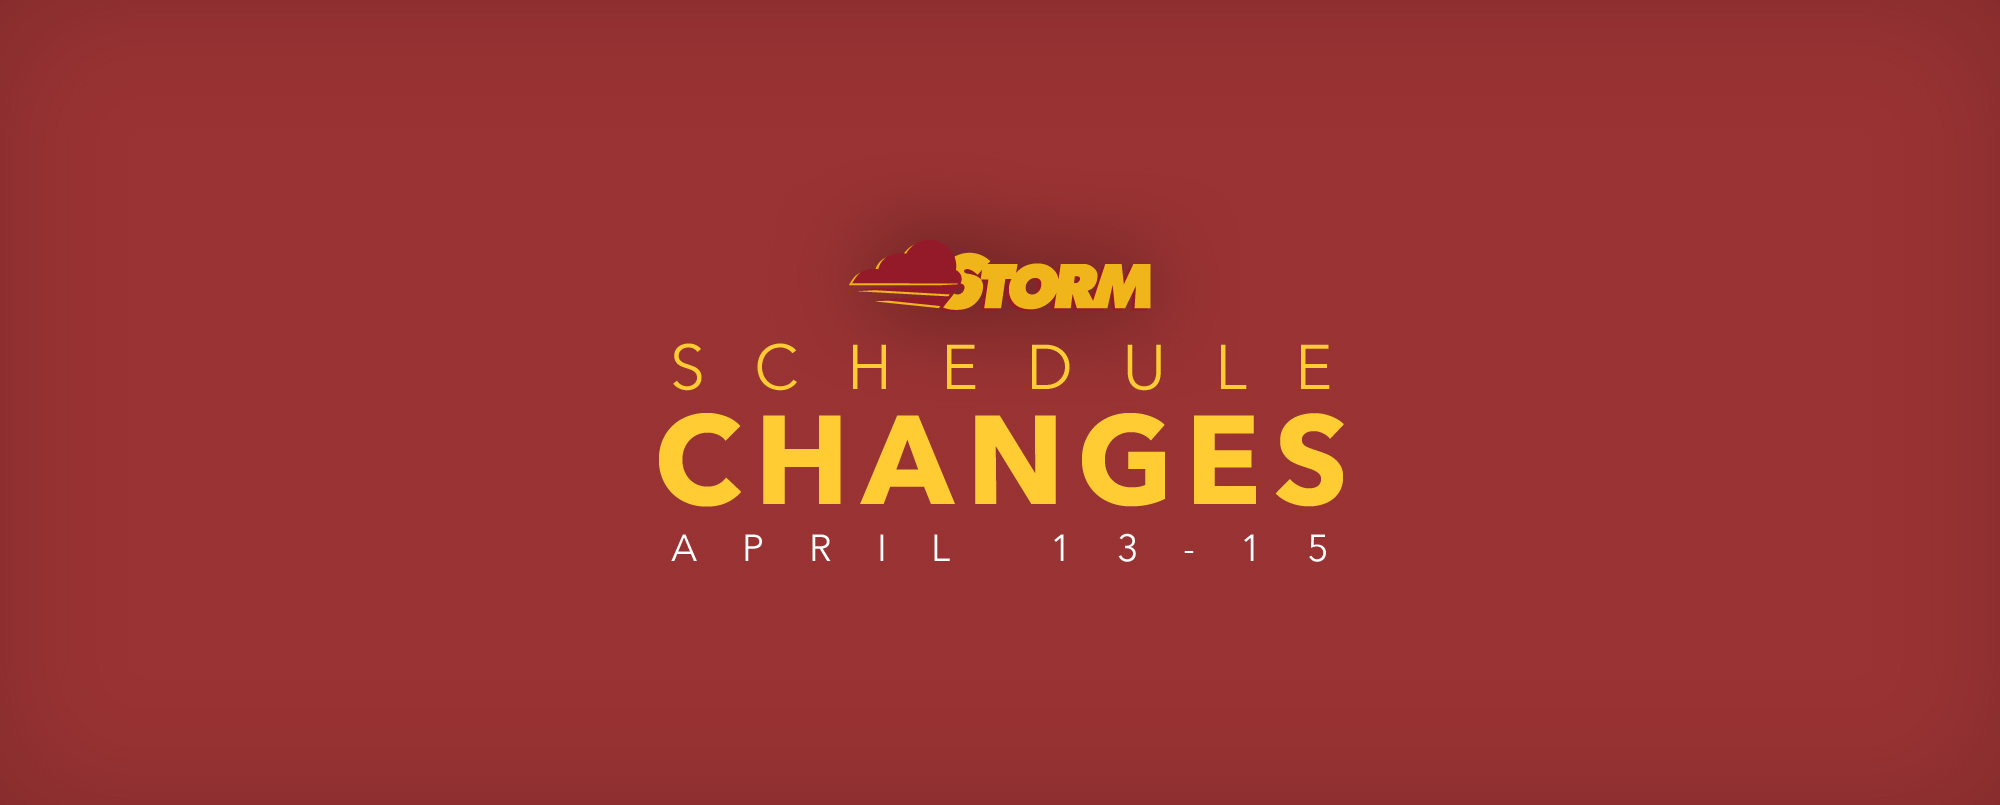 Schedule Changes: Weekend of April 13-15